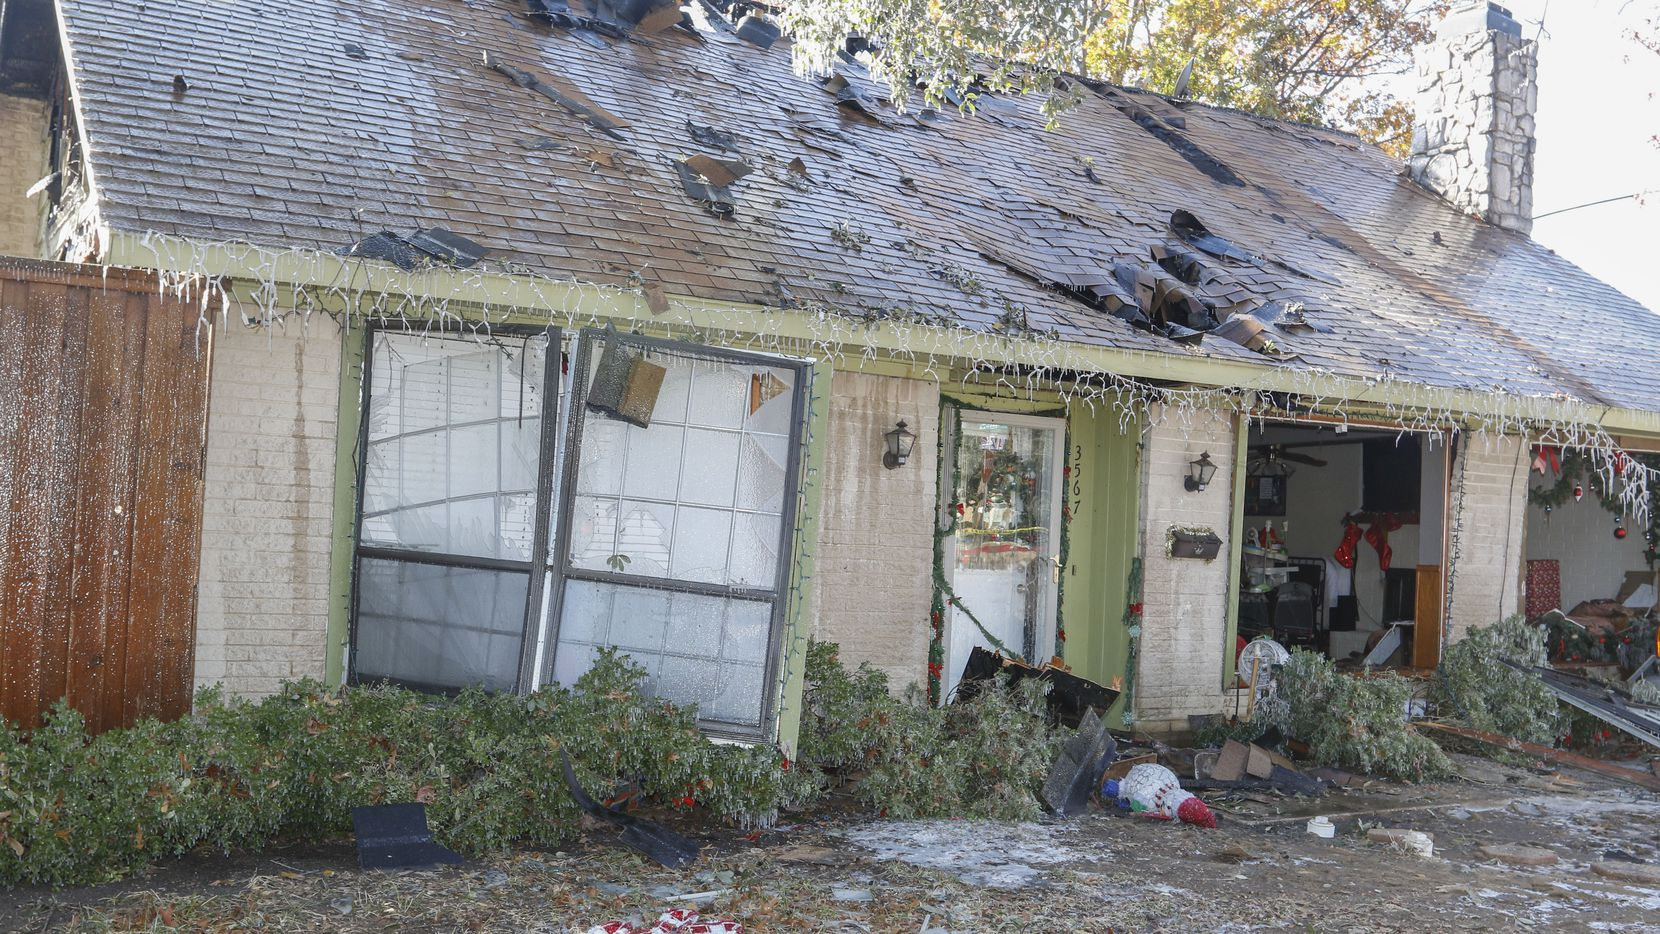 The aftermath of a natural gas explosion at a house located at the southeast corner of Colgate Lane and N. O'Connor Road in Irving, Texas Monday, January 1, 2018. No serious injuries where reported. (Ron Baselice/ The Dallas Morning News)